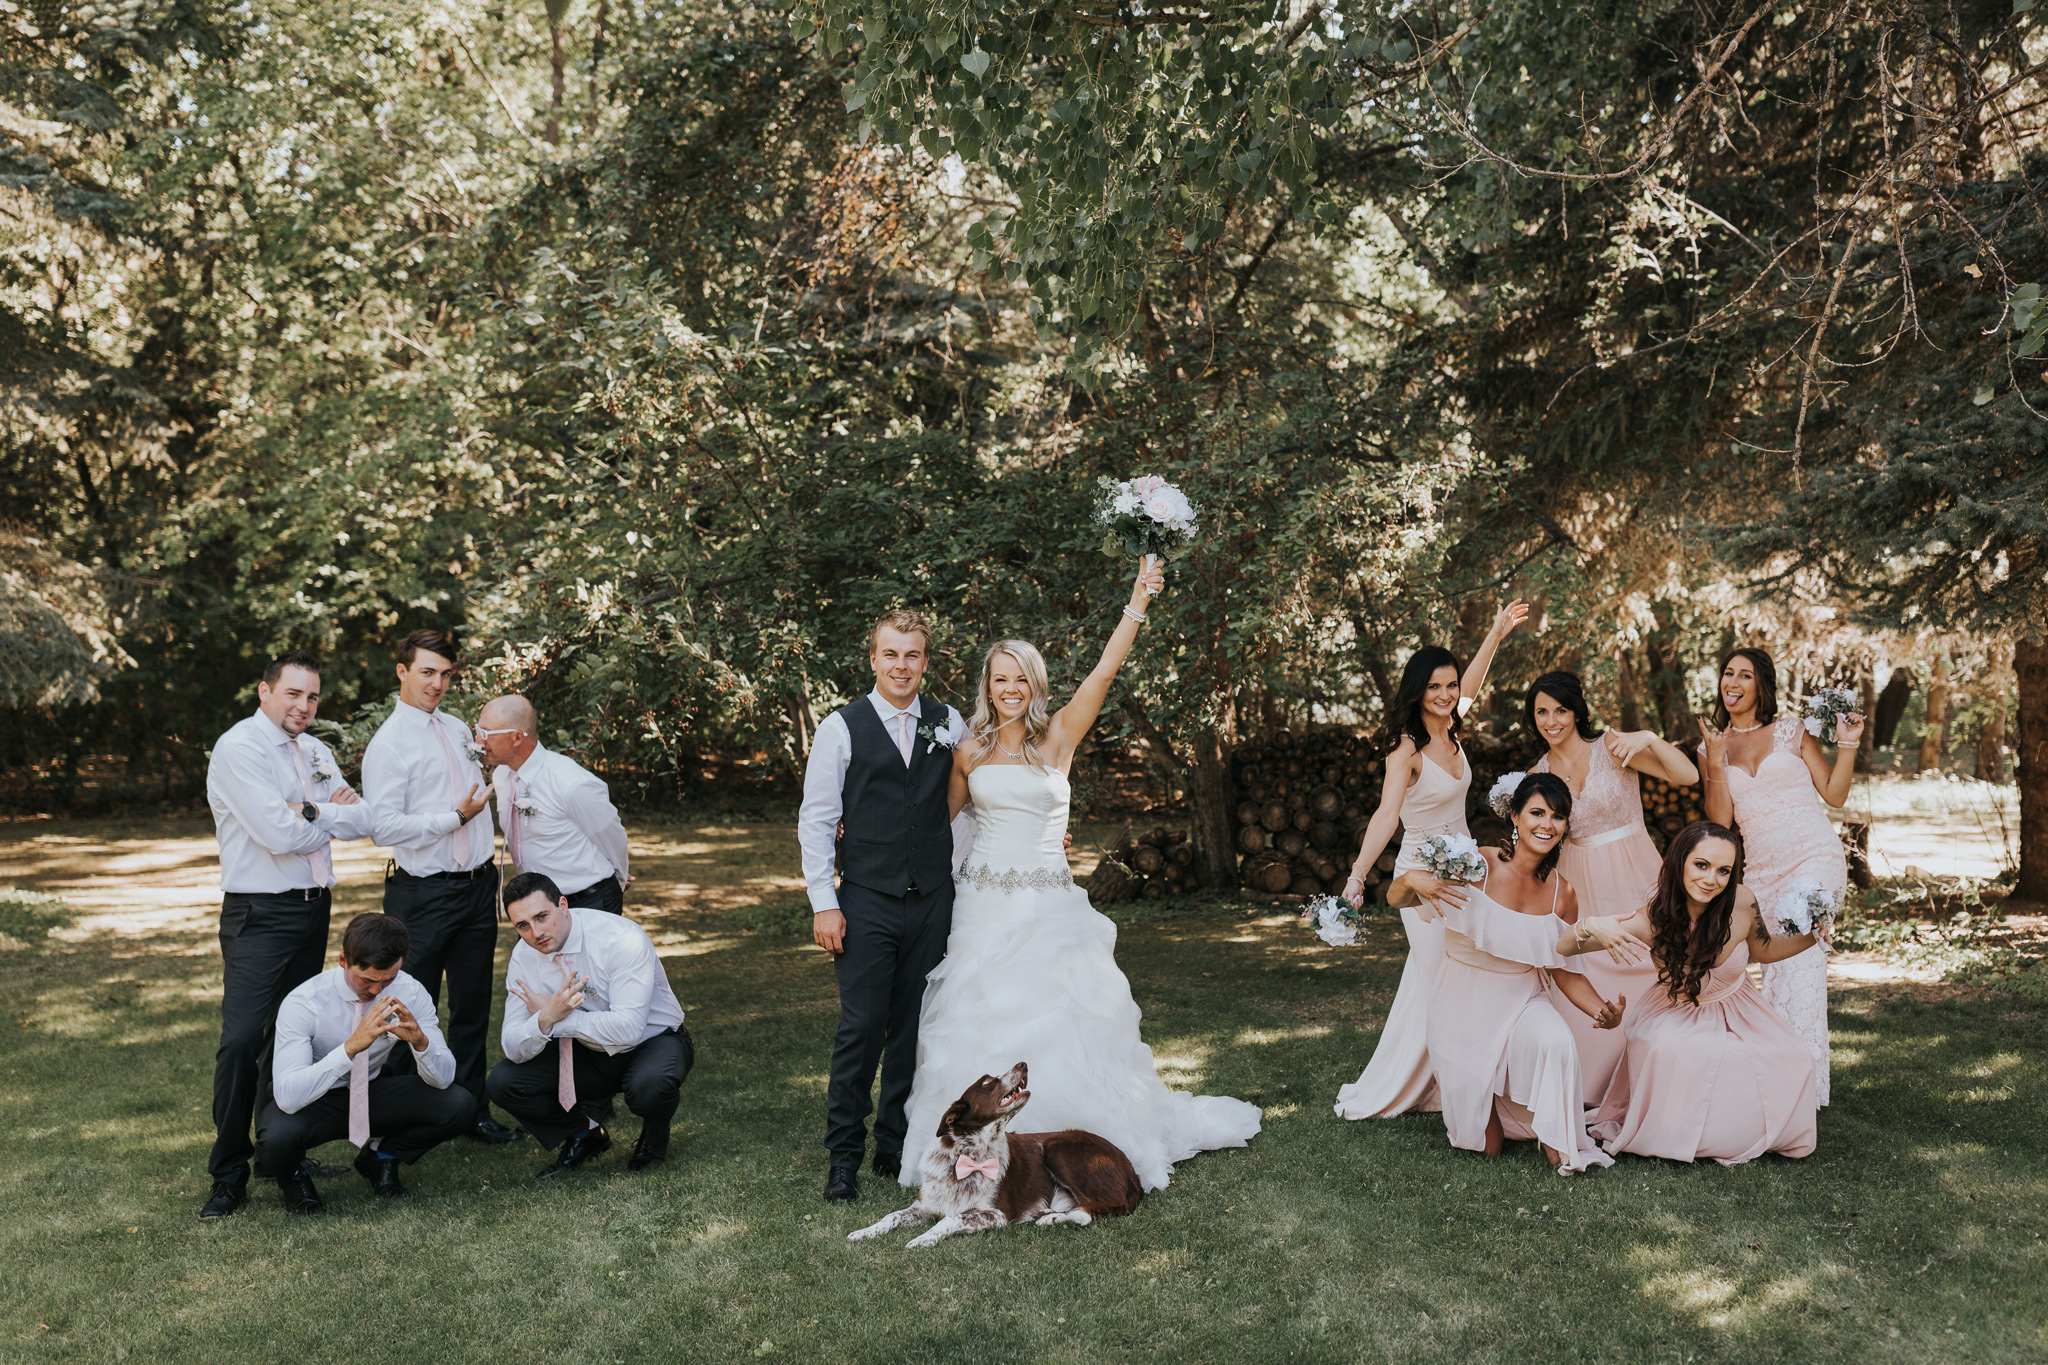 bridal party poses beside bride and groom